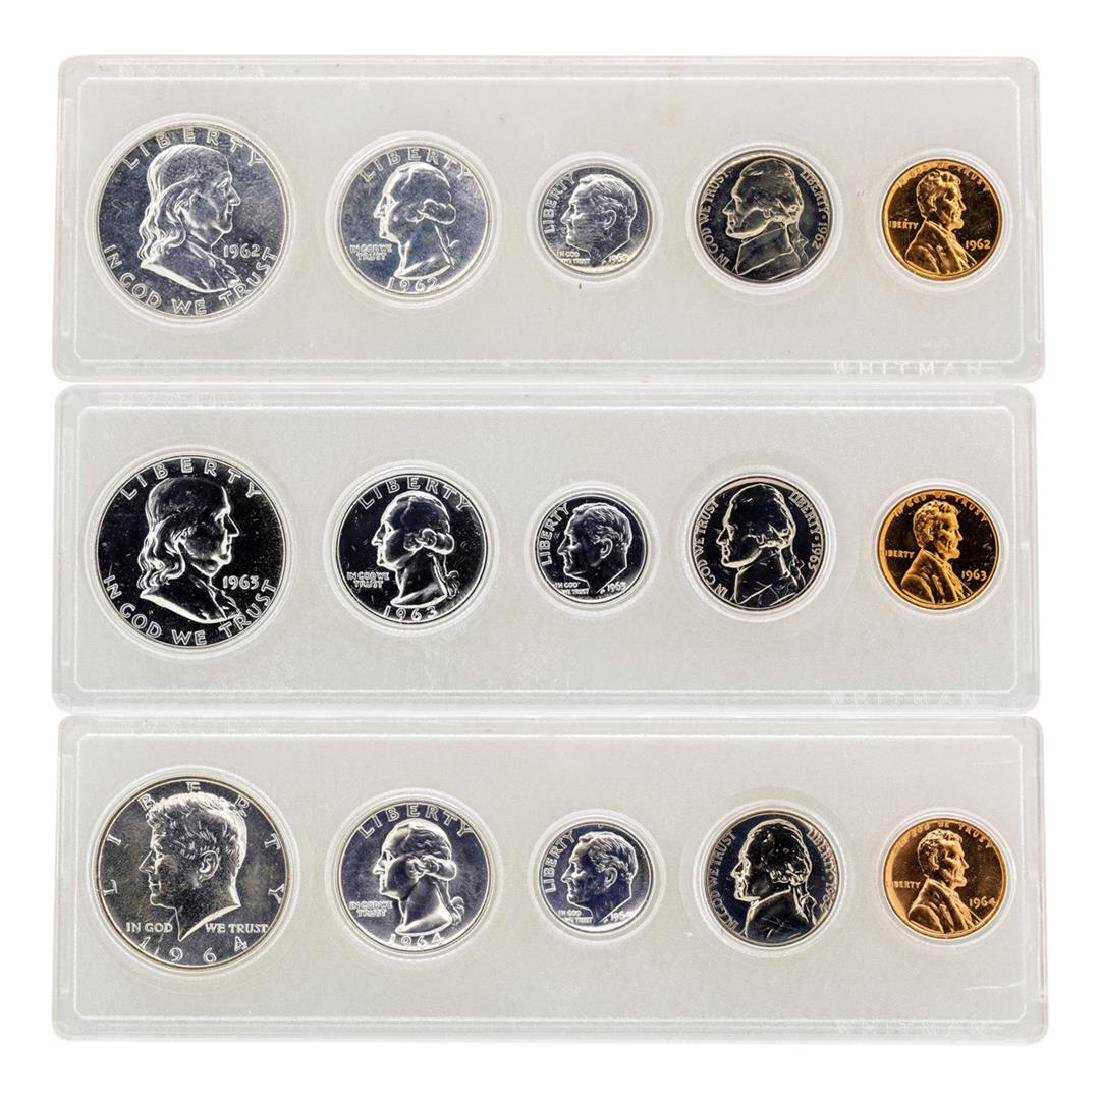 Lot of 1962-1964 (5) Coin Proof Sets